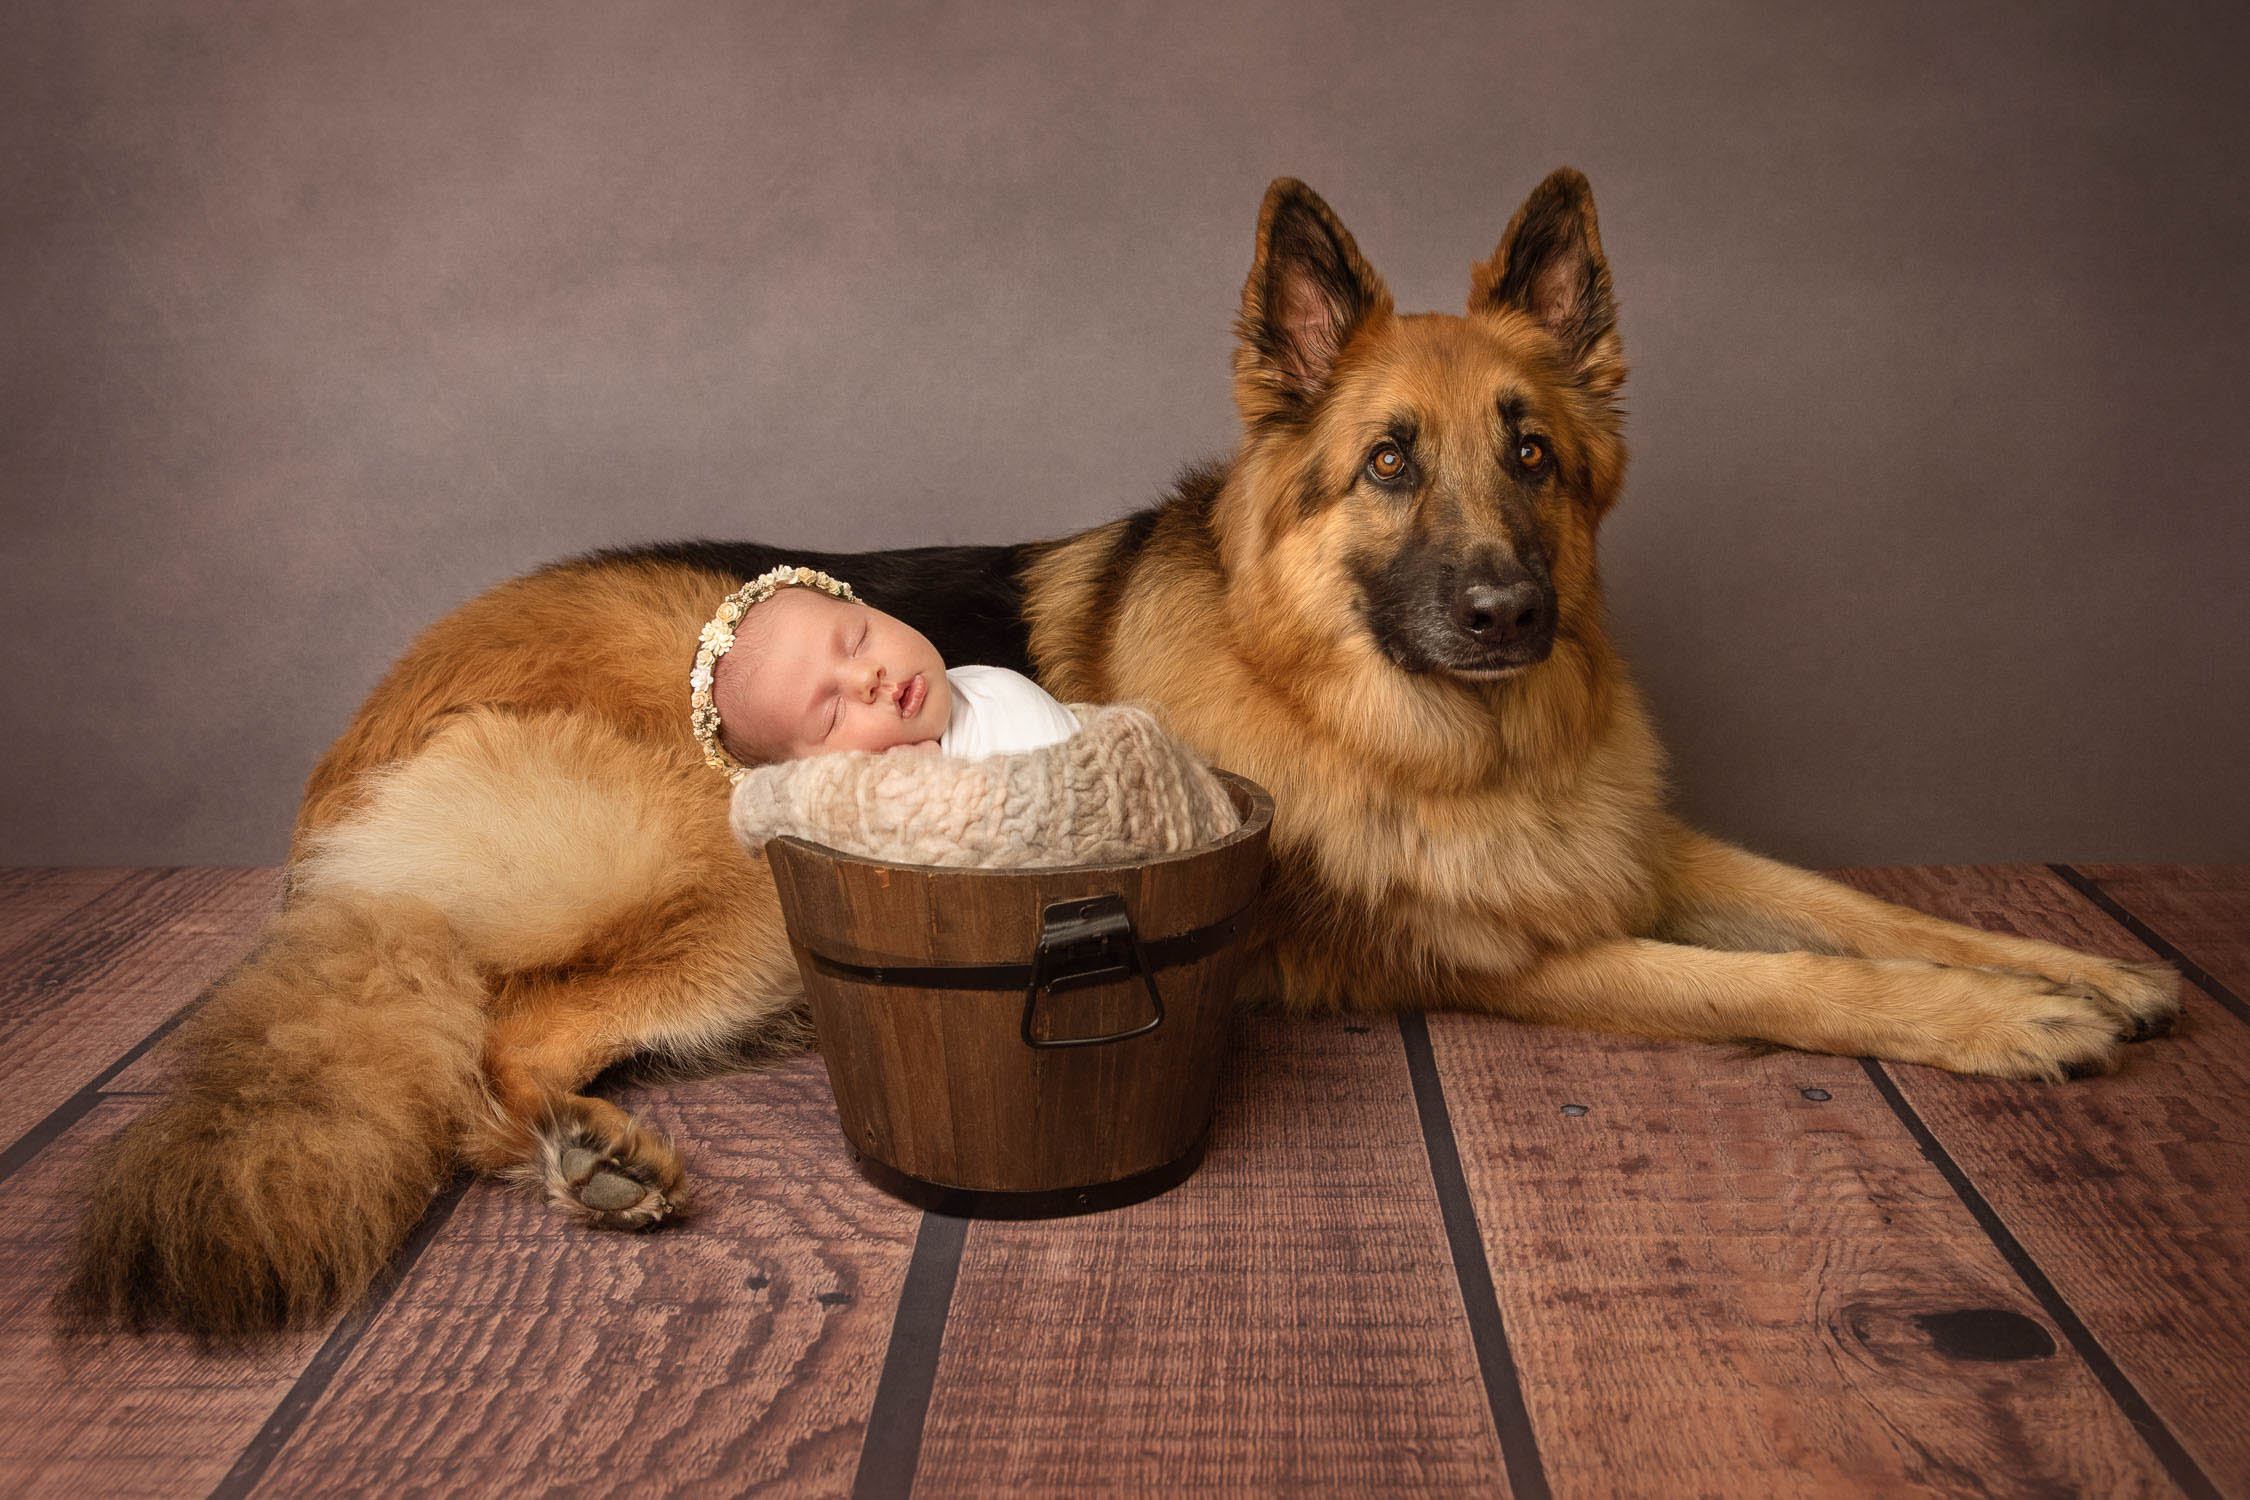 dog and baby photograph by pet photographer siobhan kelly photography